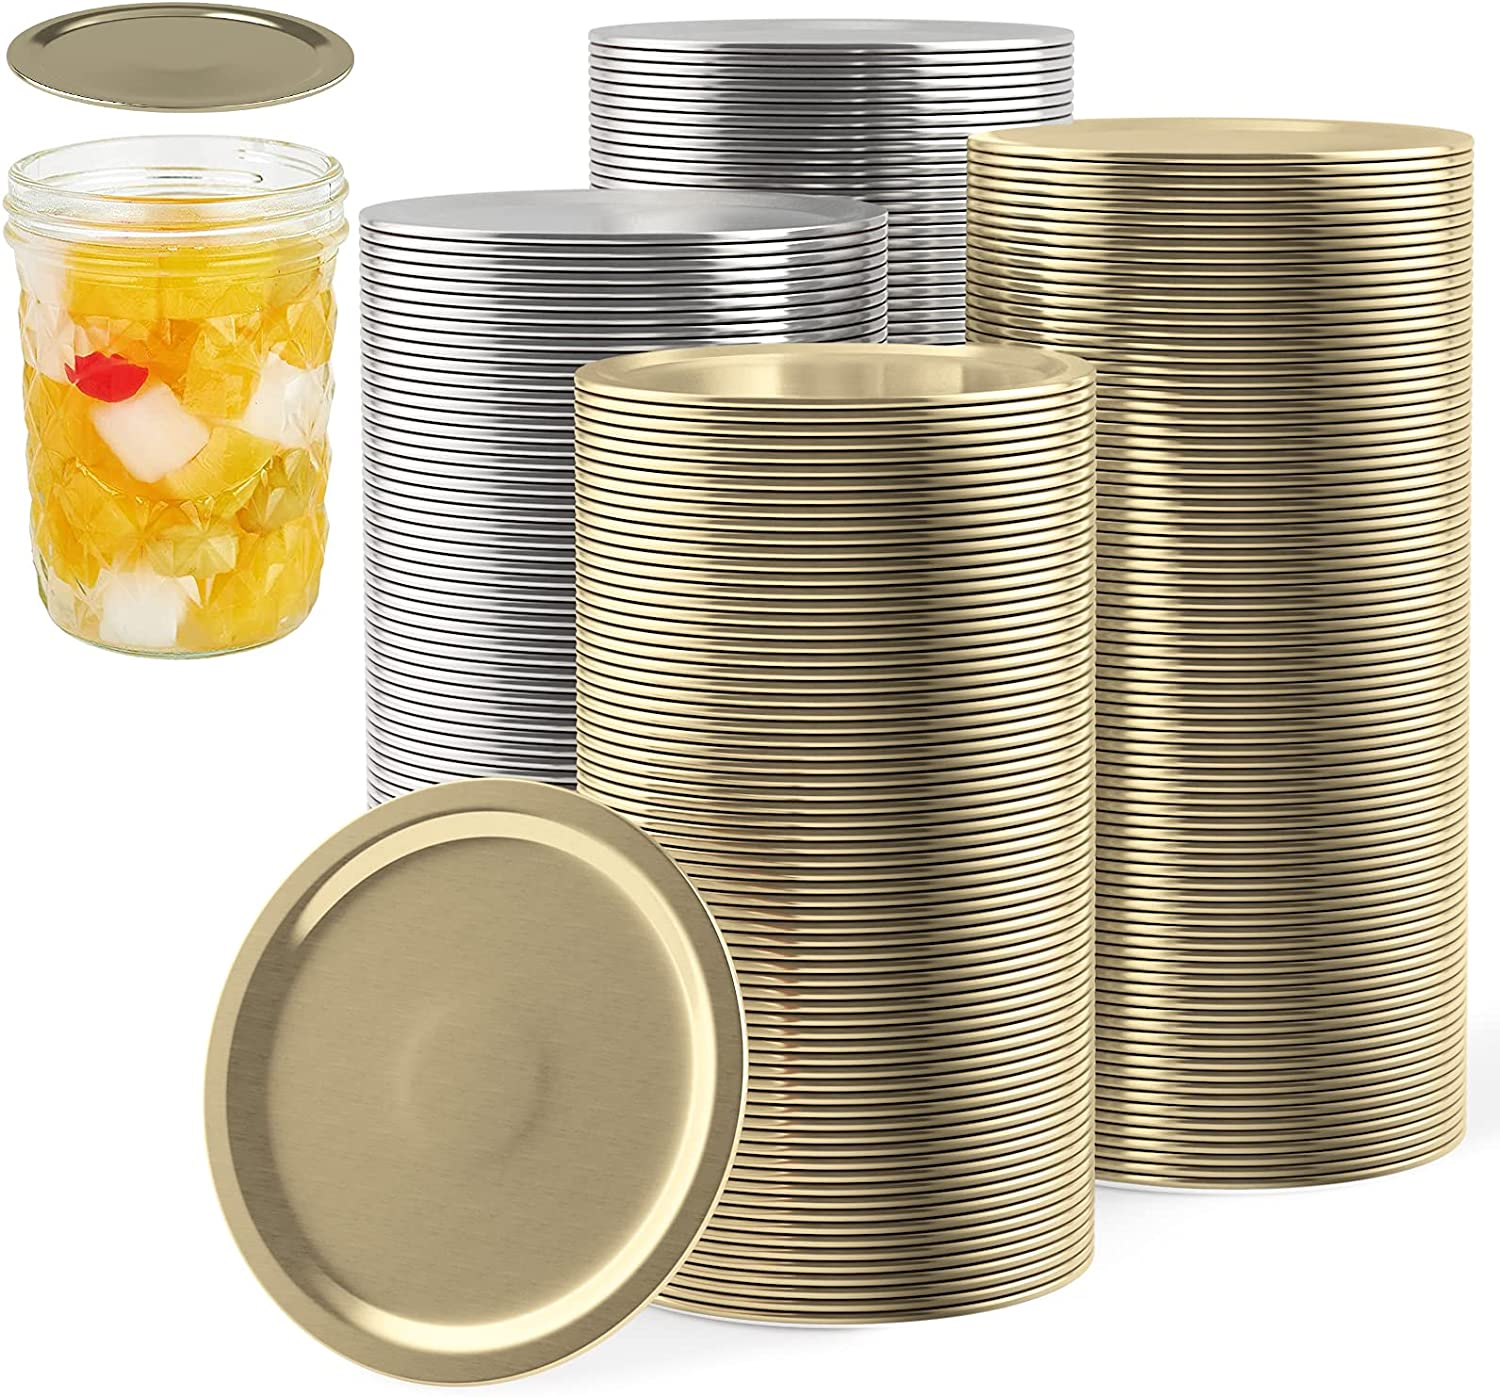 100 Clearance SALE Limited time Sales PCS Wide Mouth Canning Lids Split-Ty Kerr Ball for Jars